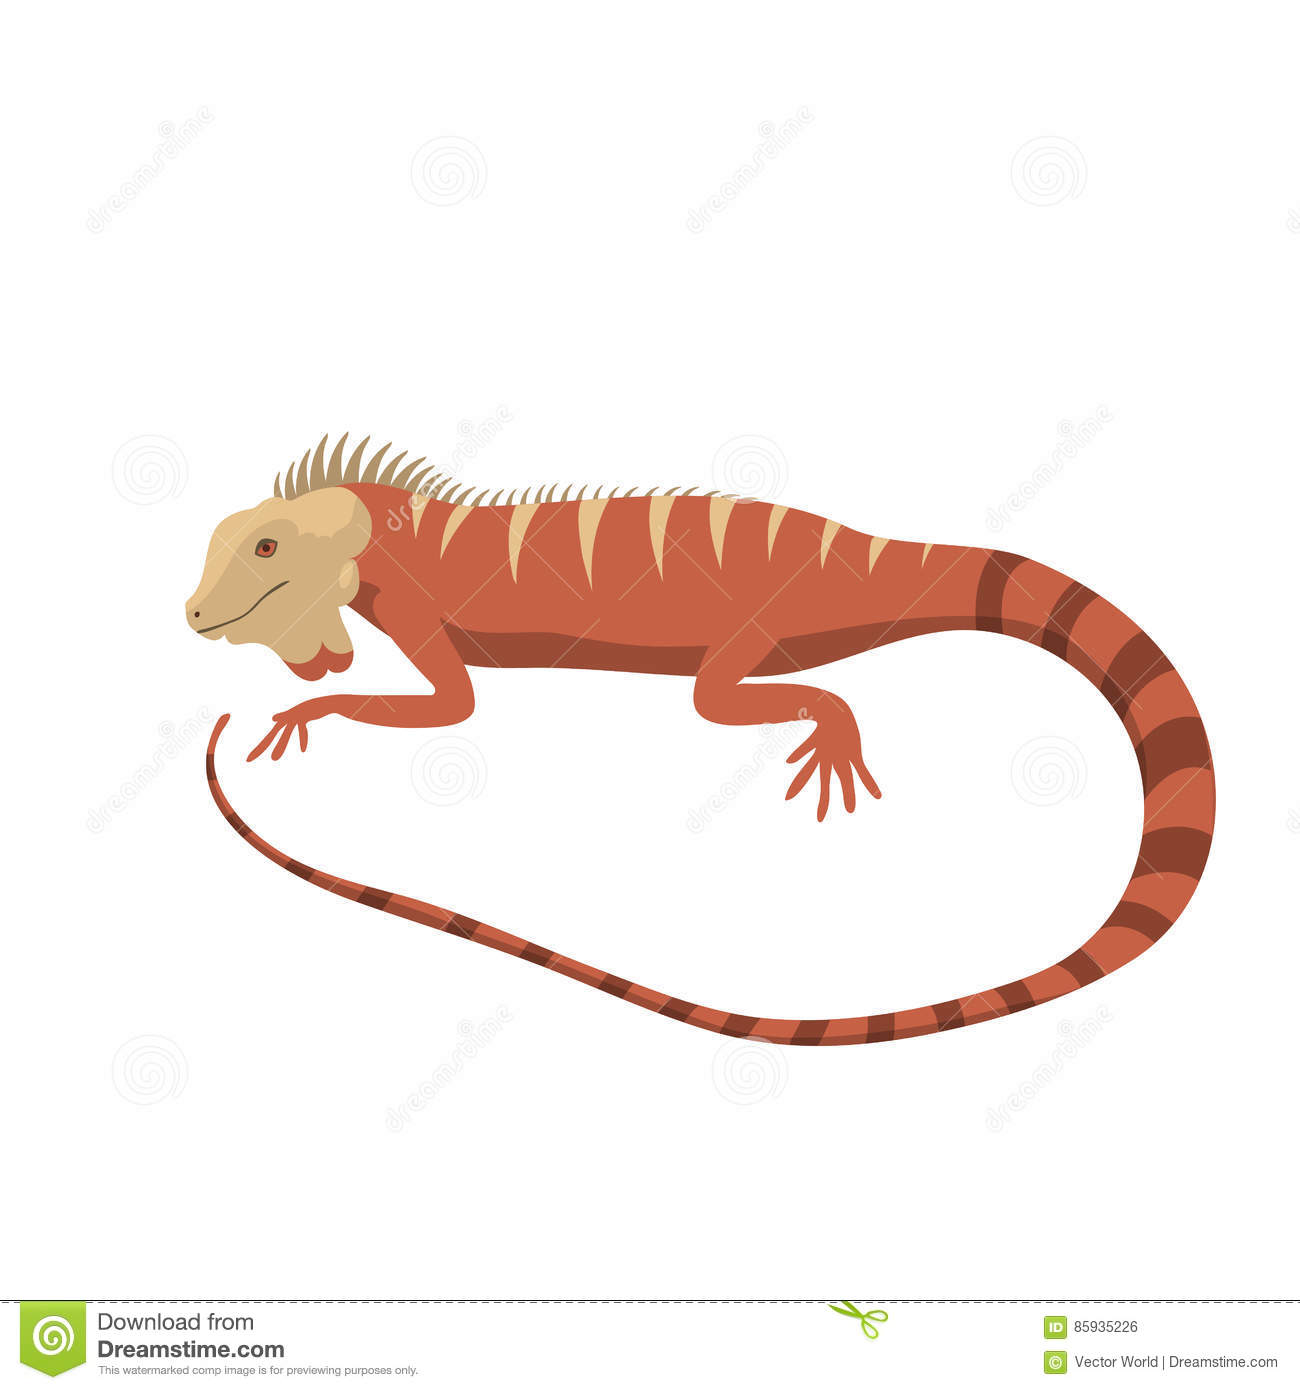 Iguana Lizard Reptile Vector Illustration Wild Cartoon Nature Dragon Funny Design Flat Drawing Body Monster Character